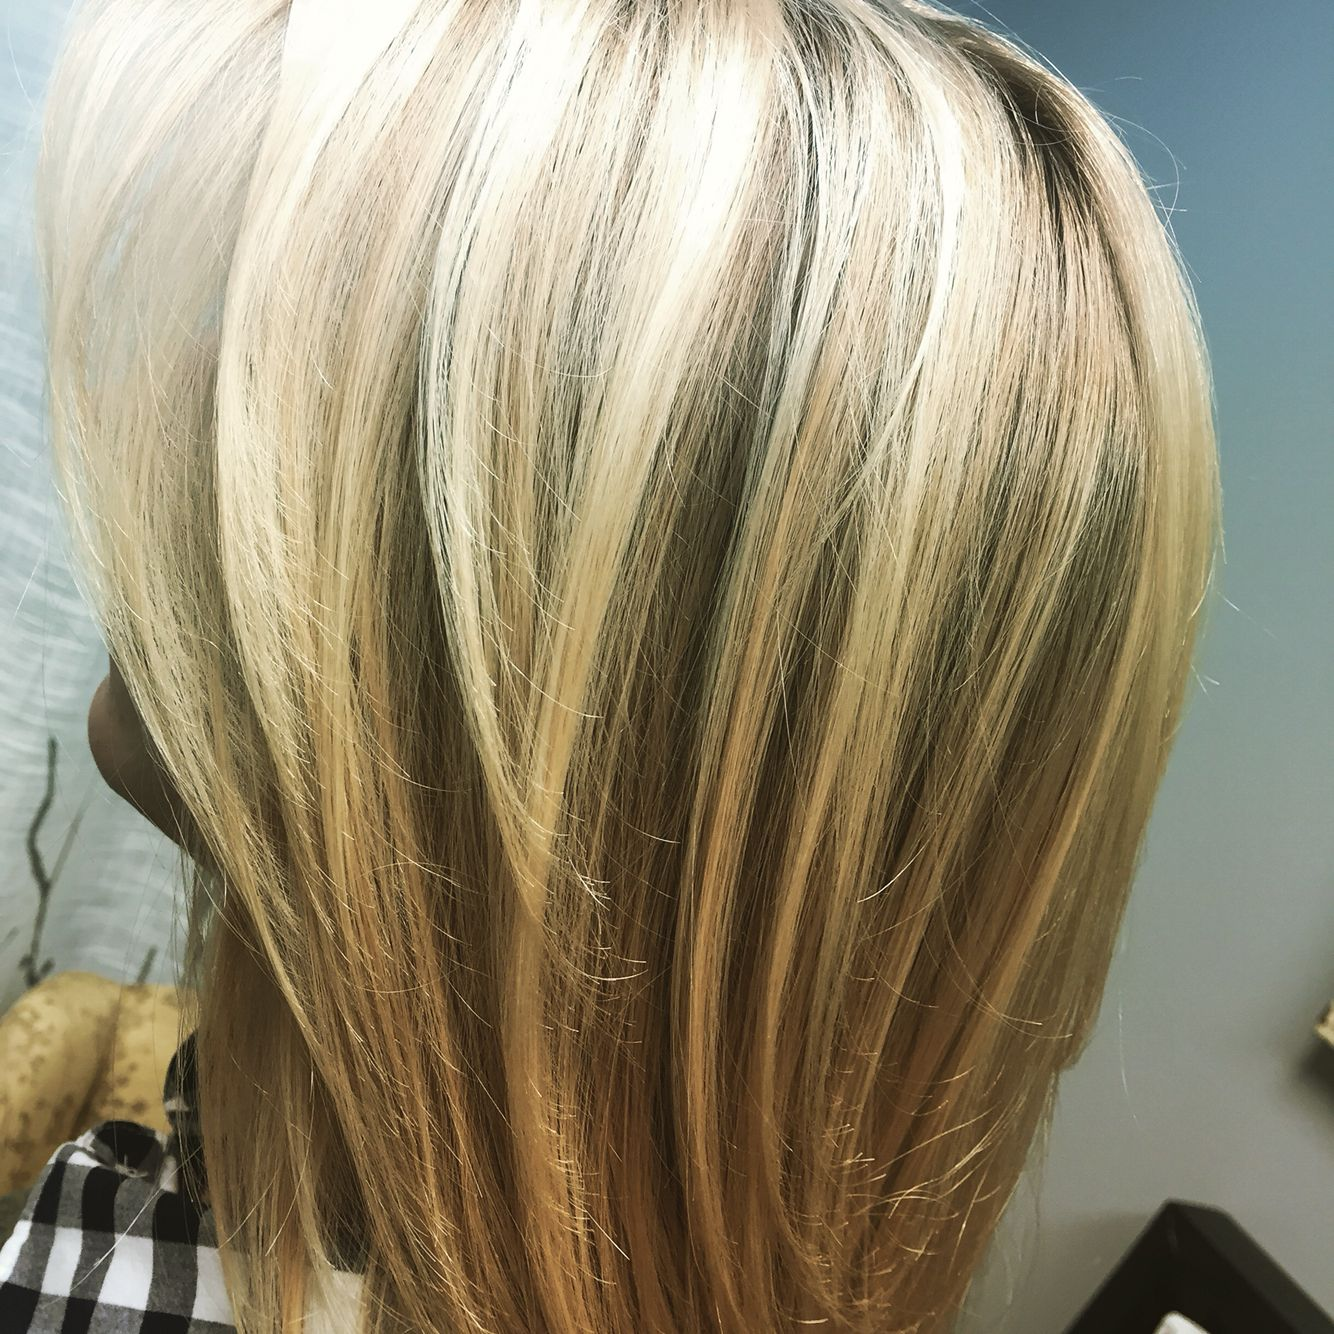 All Nutrient Color By Jessica Willis Blondie Thewsalon Long Hair Styles Hair Styles Hair